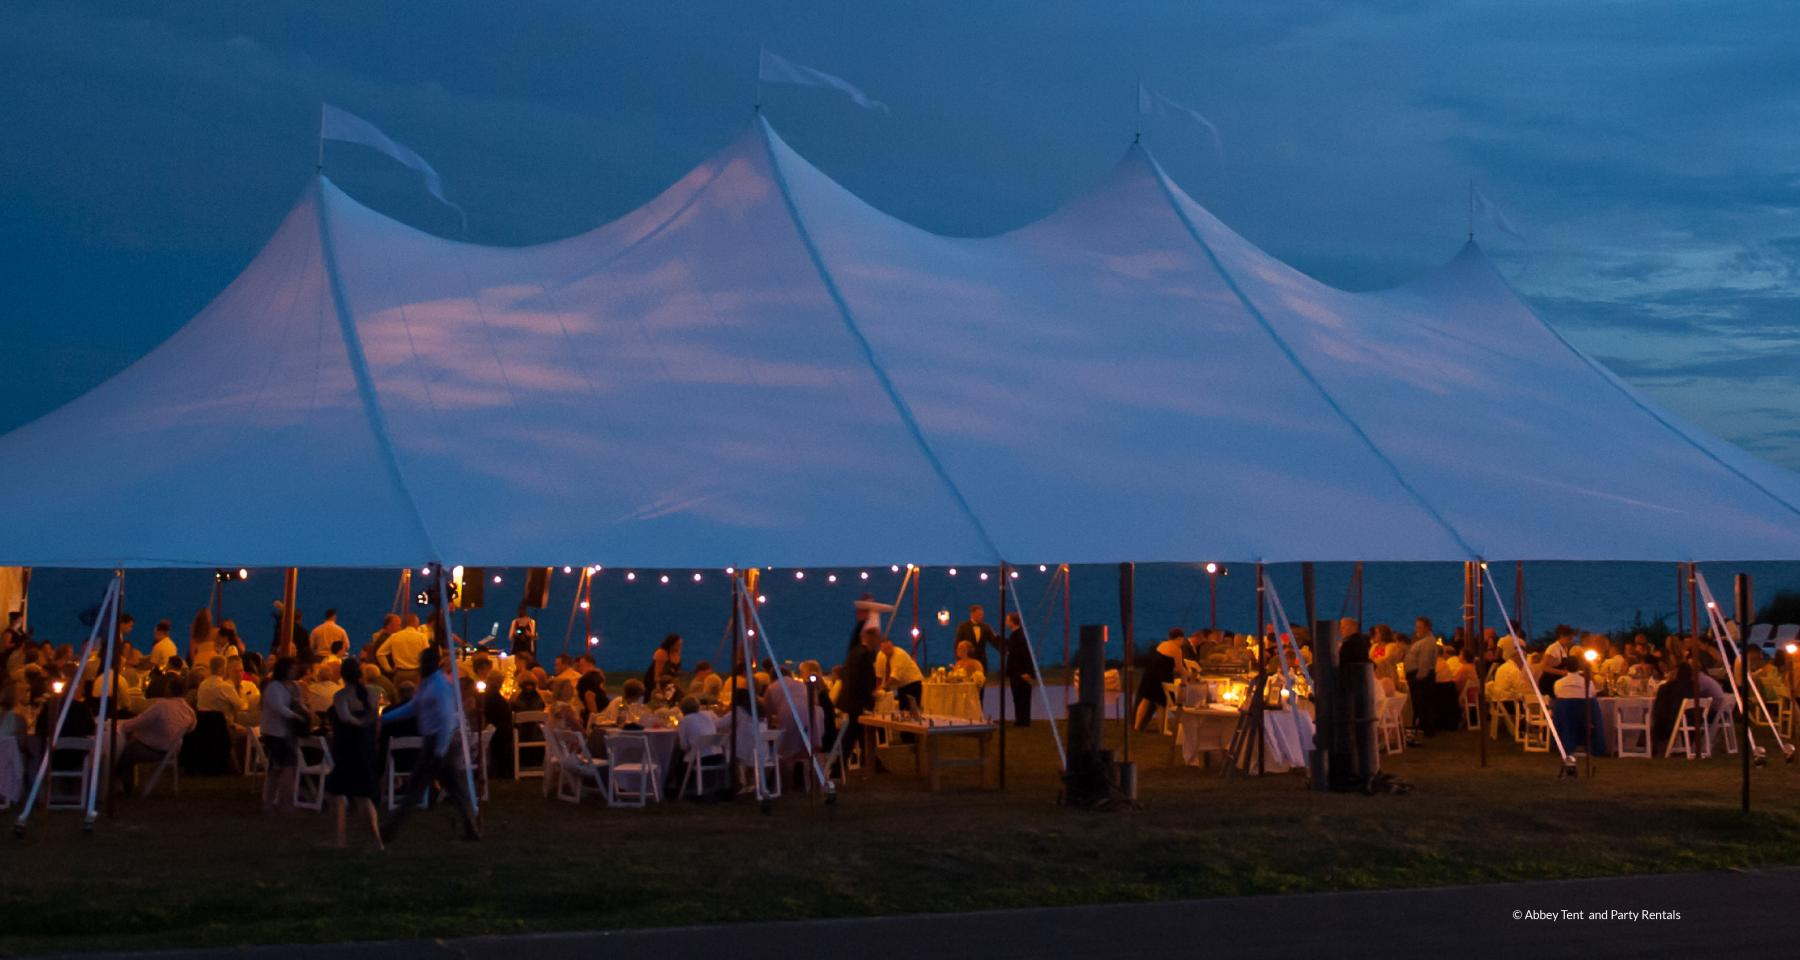 Top Custom Tent Manufacturer for Weddings & Events | Fred's Tents